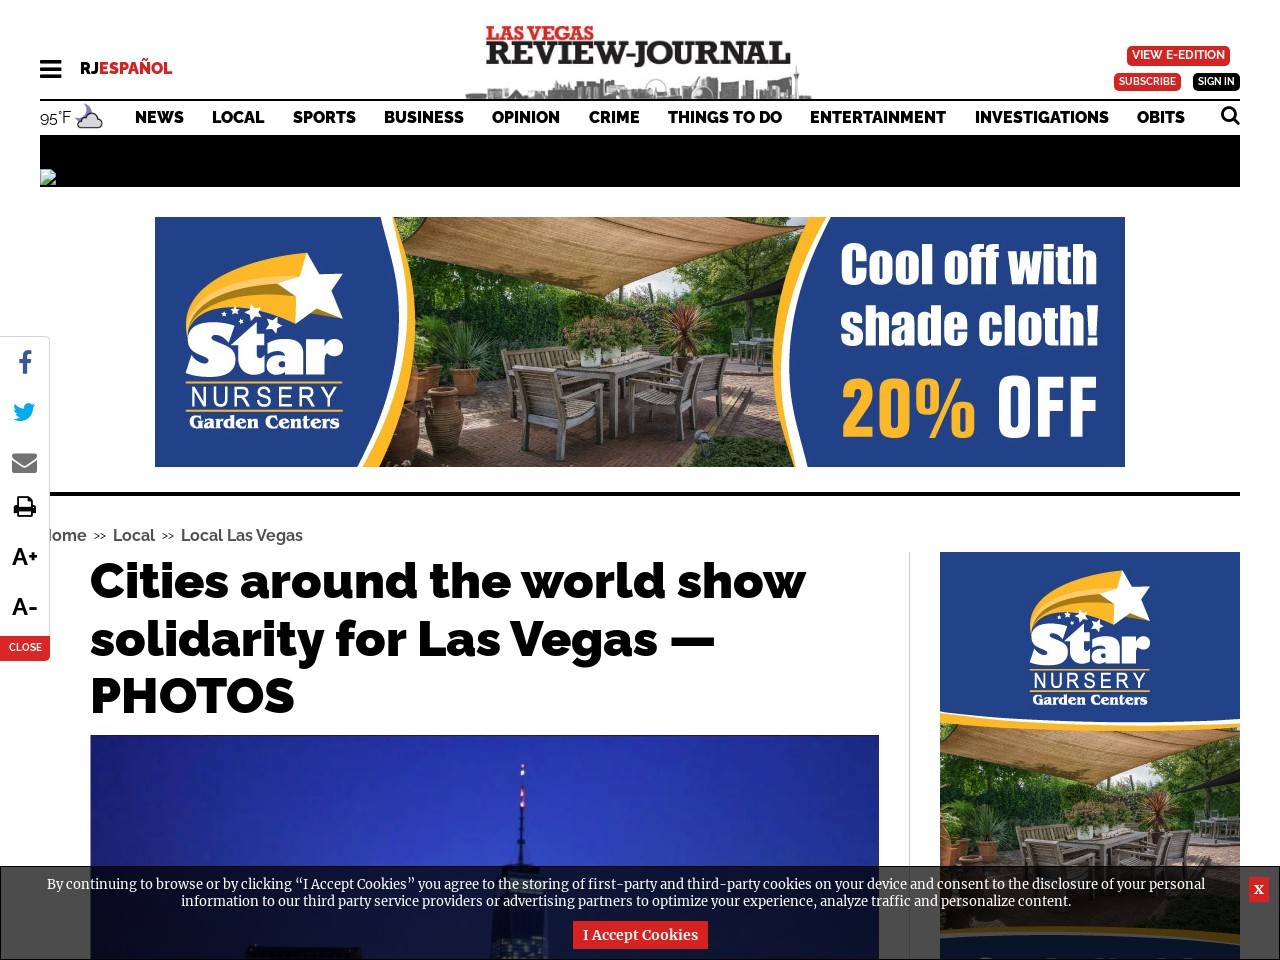 Cities around the world show solidarity for Las Vegas — PHOTOS